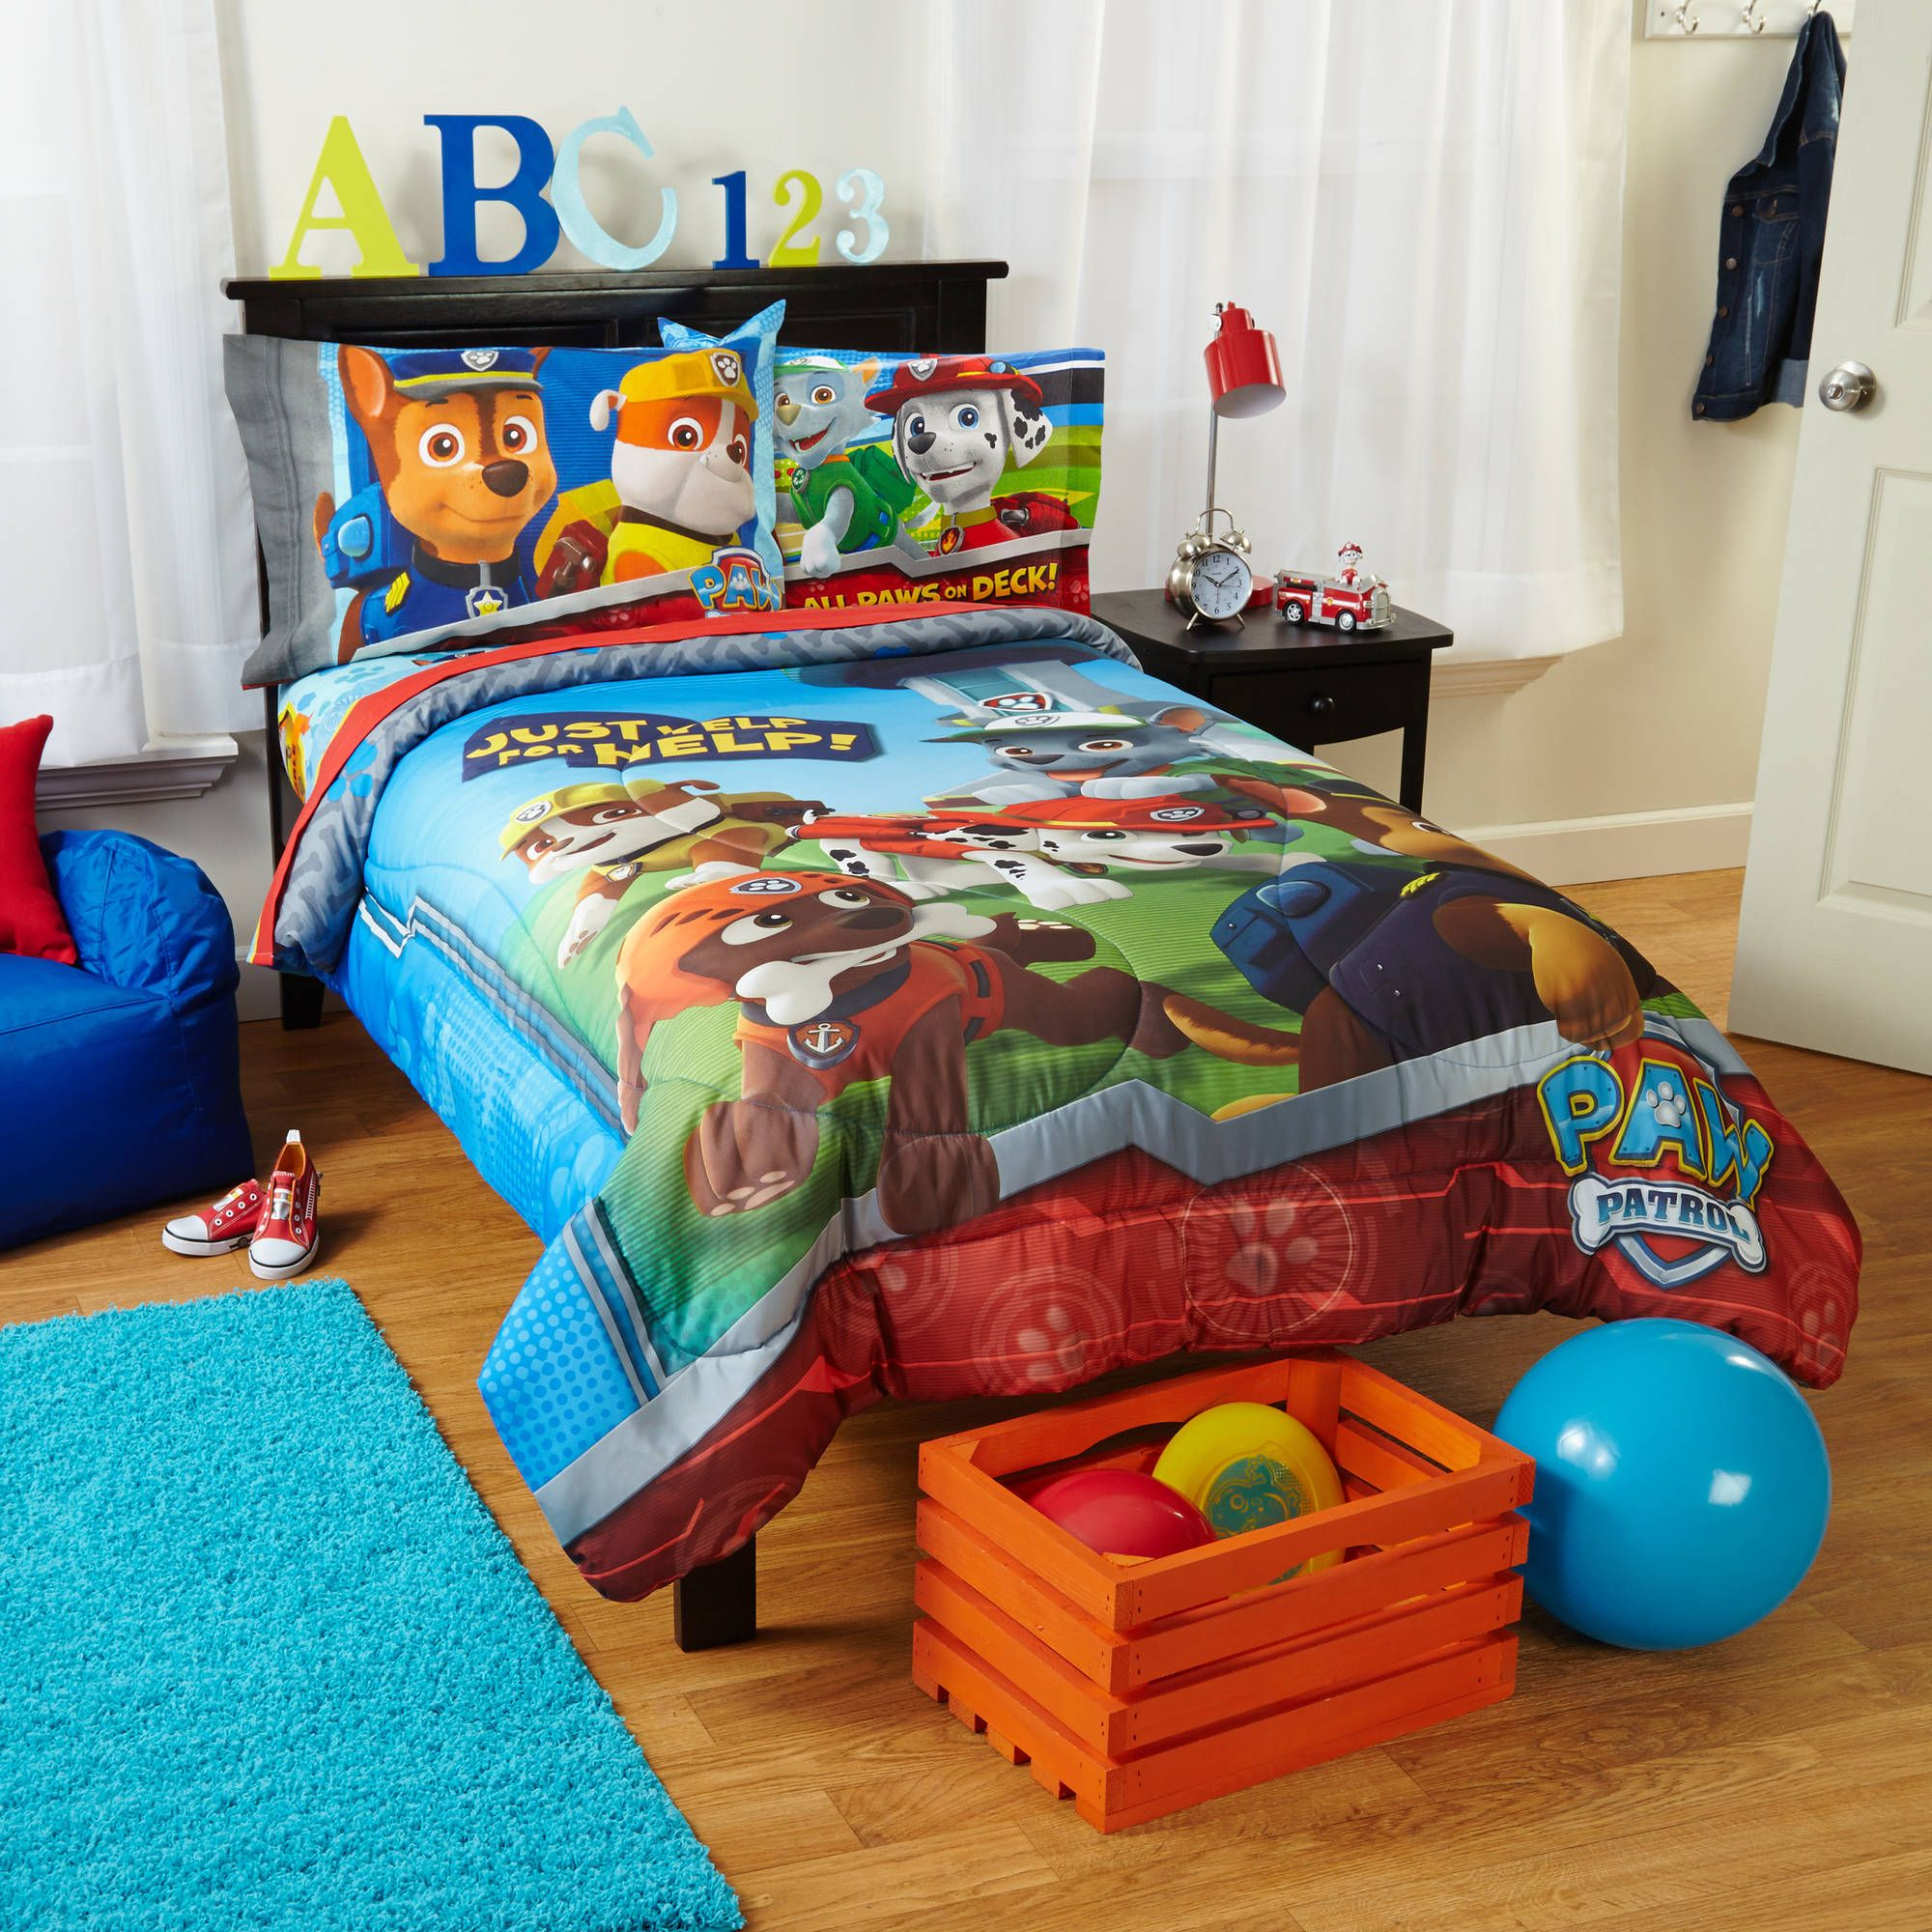 bedding state perfect for college a bed sets bag in amusing twin windows accessories gallery dw comforter xl gadget